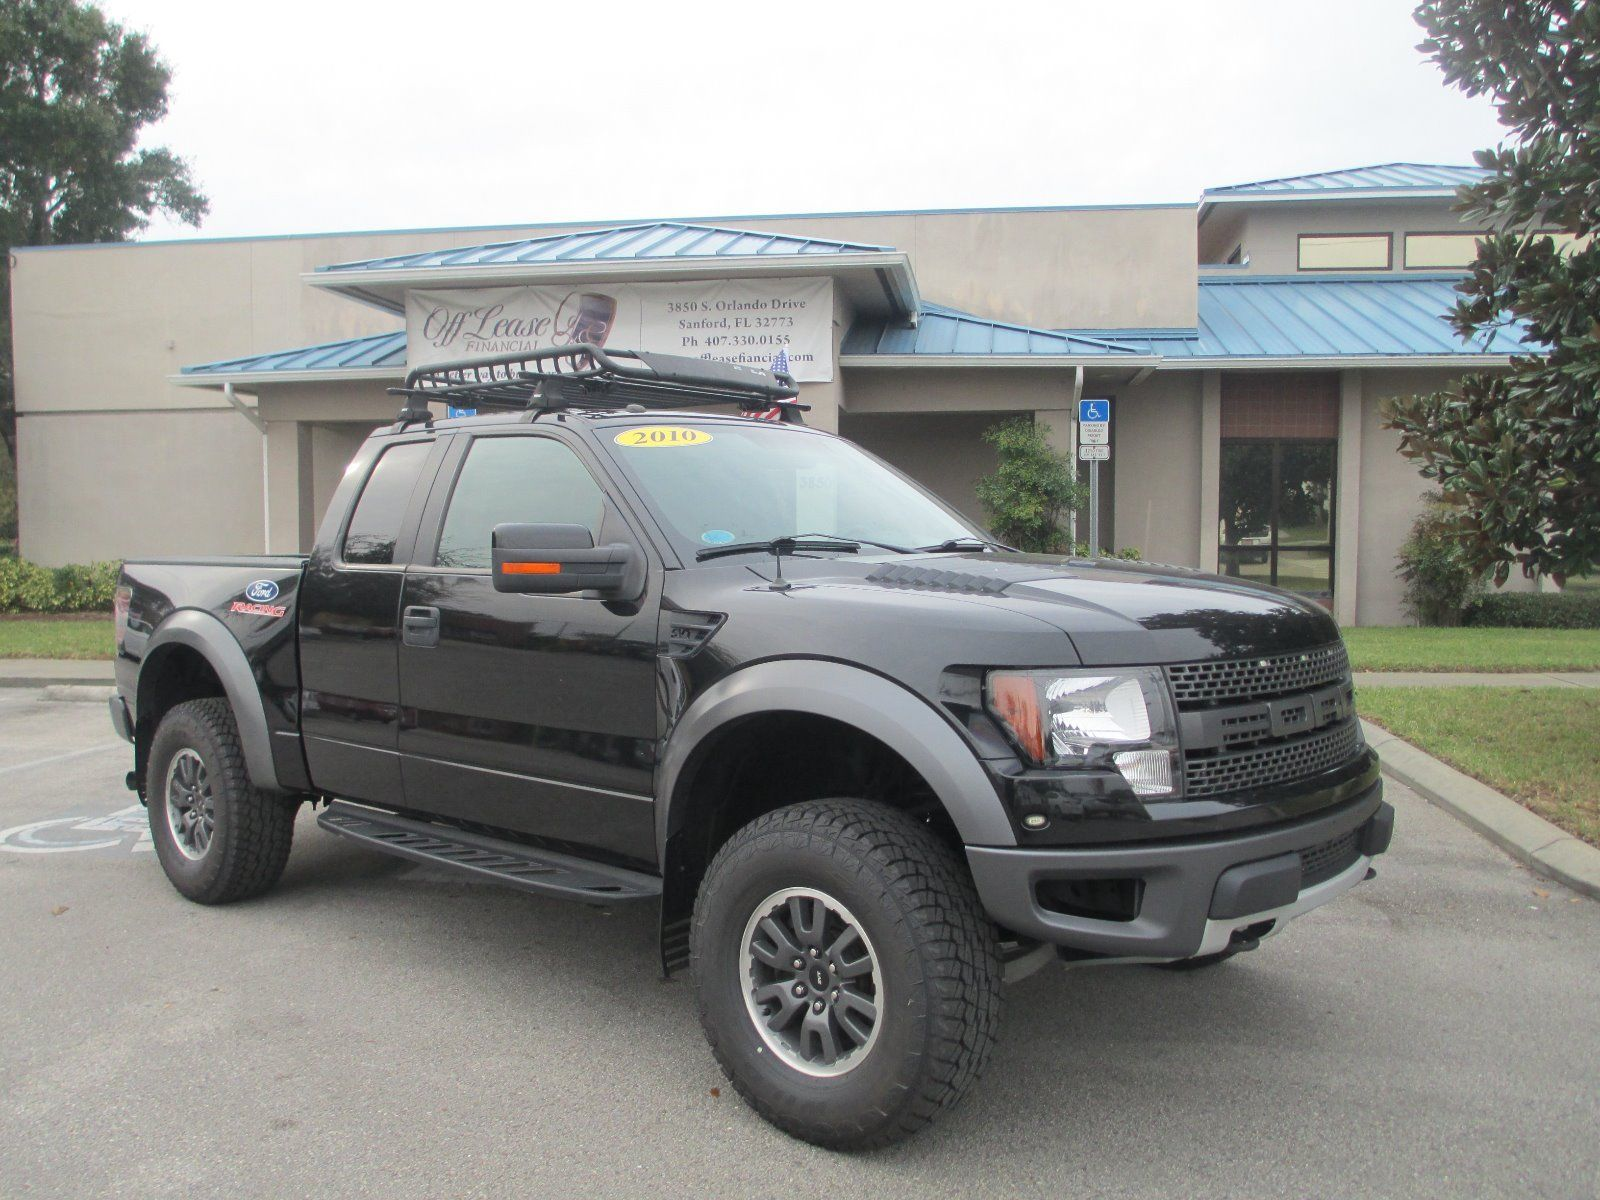 2010 ford f 150 svt raptor 4 4 supercab styleside for sale. Black Bedroom Furniture Sets. Home Design Ideas